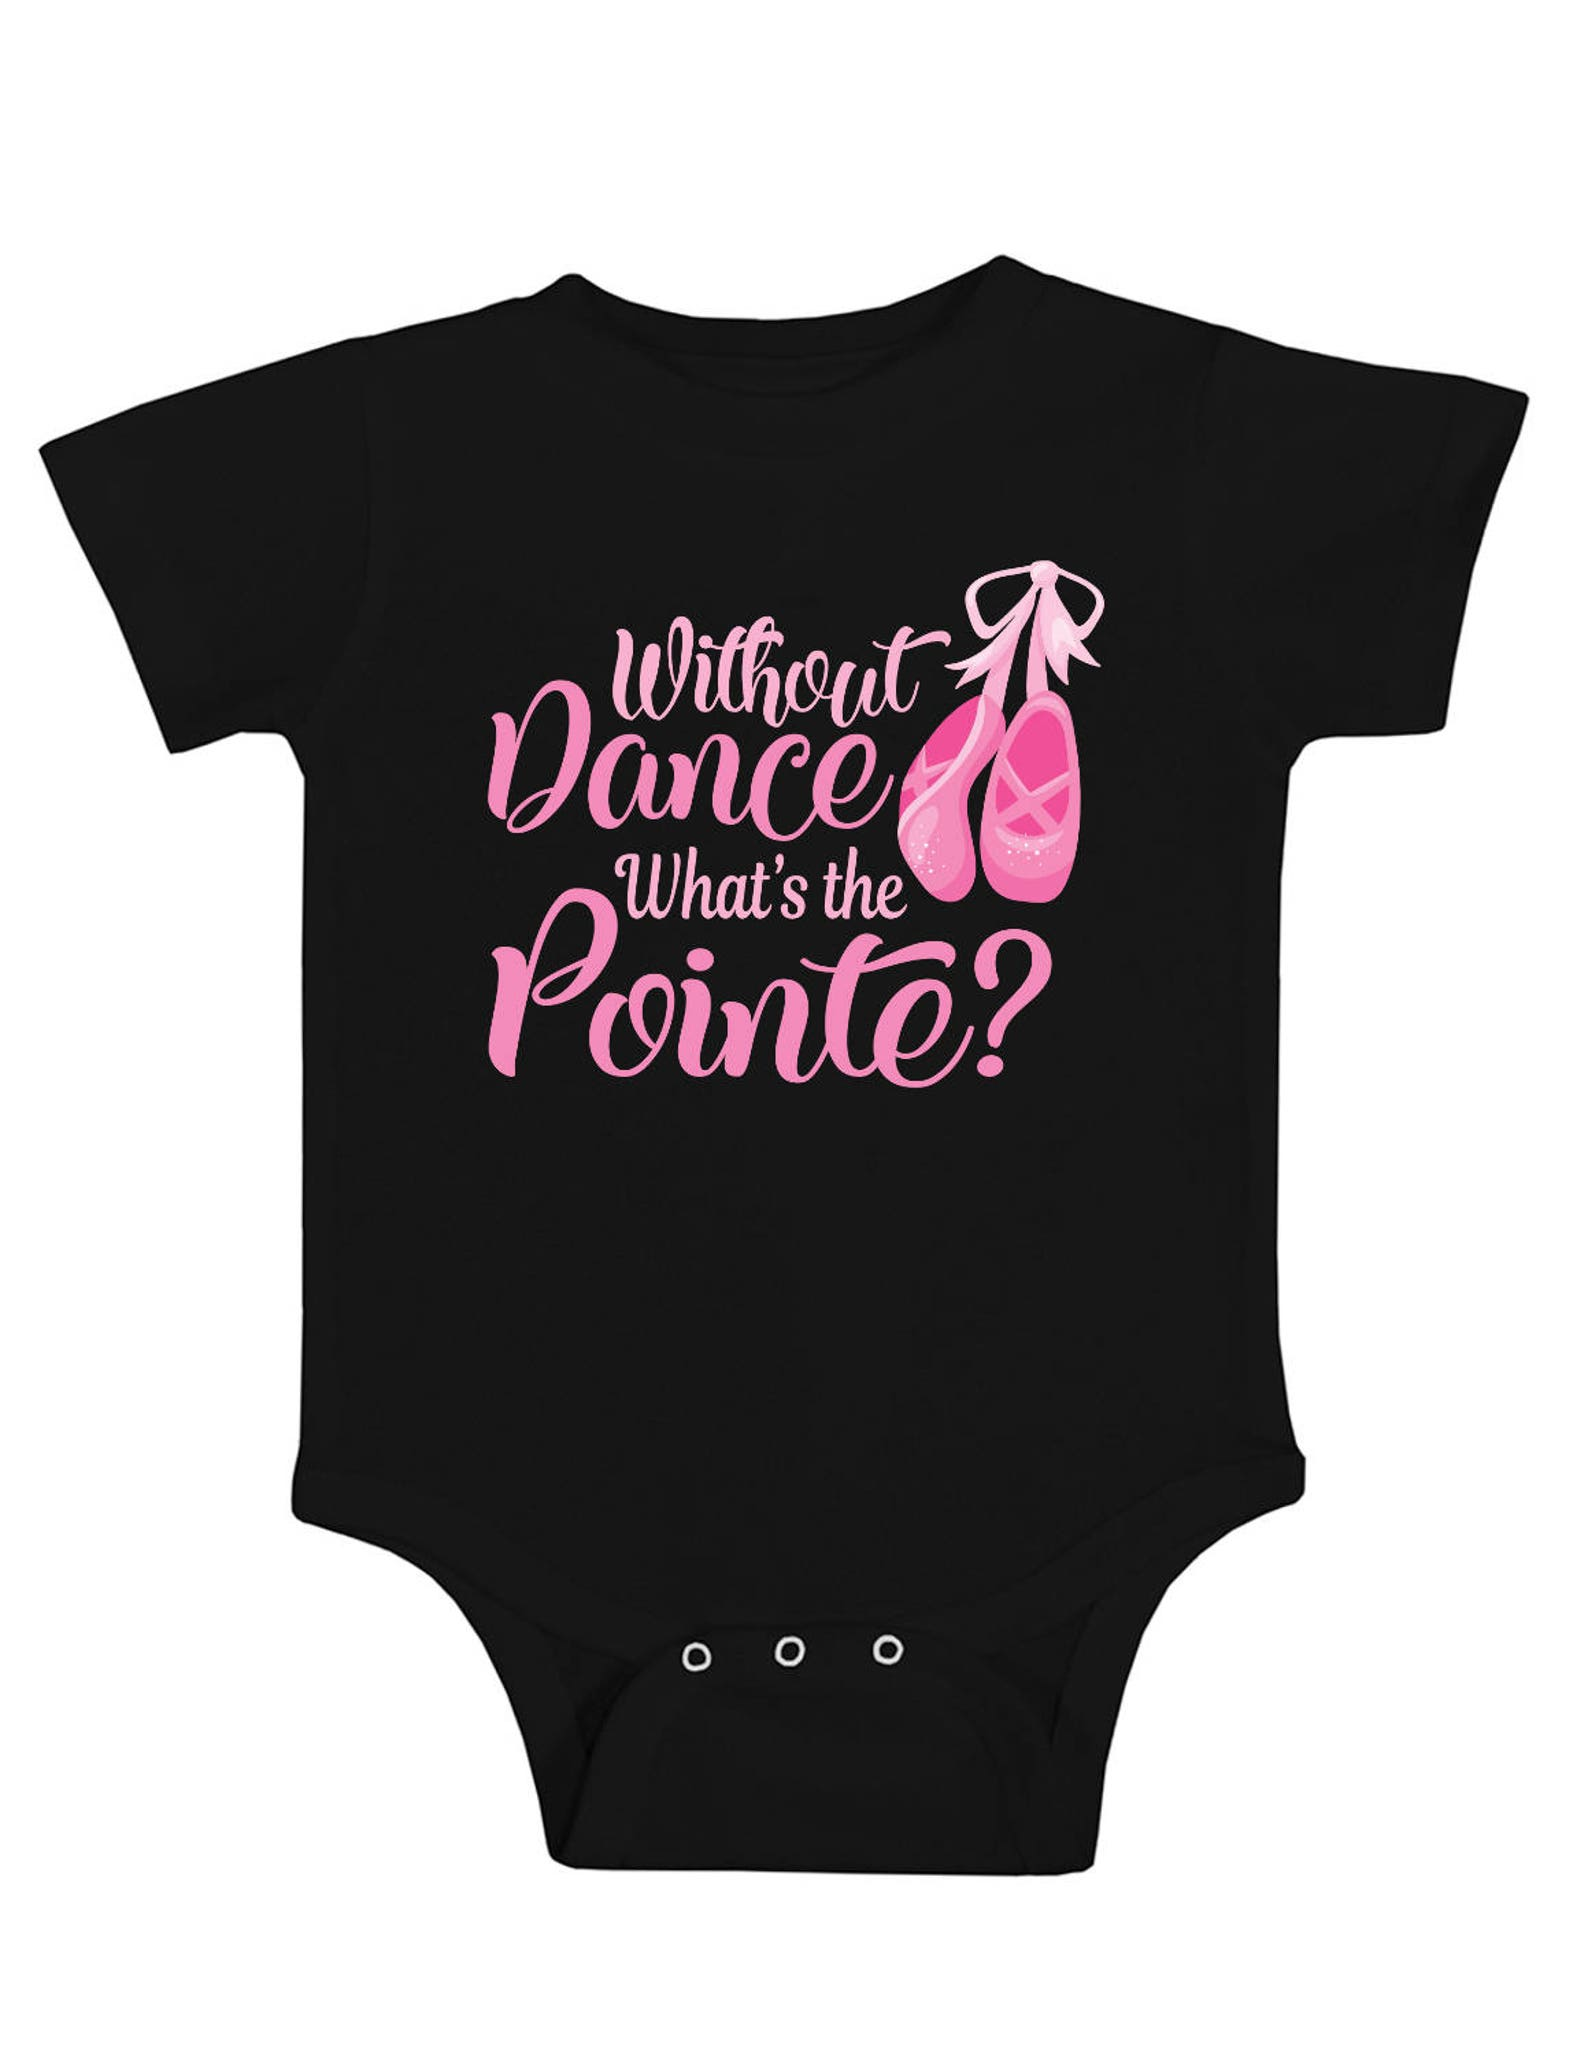 girls ballet shirt - funny dance shirt - without dance what's the pointe - girls top - graphic tee - kid's shirt - baby